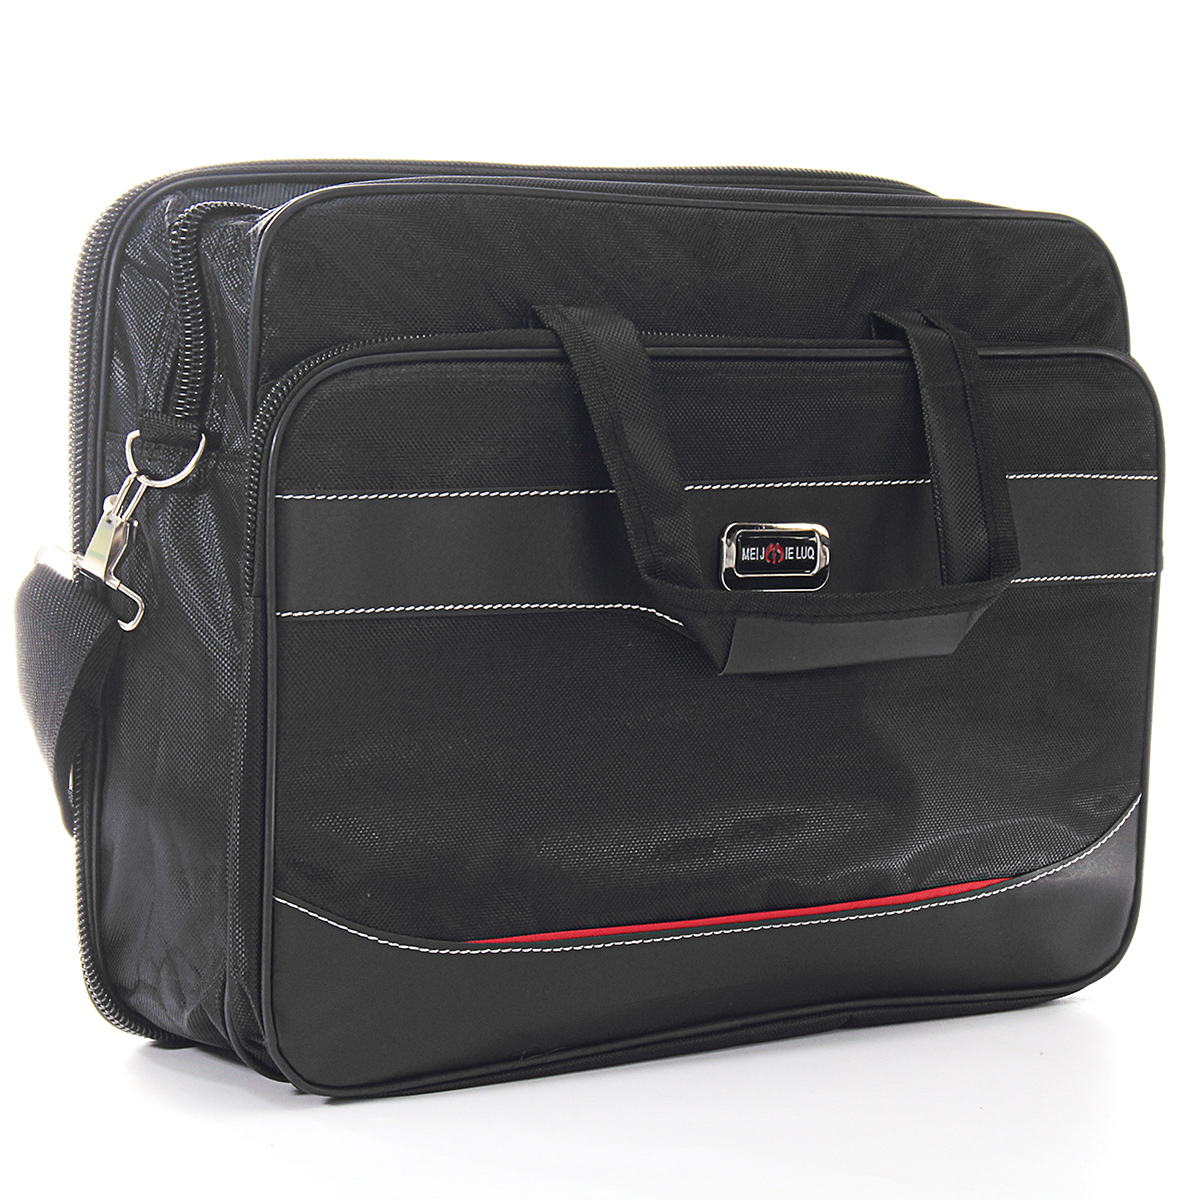 Specifications: Material: Surface: Nylon; Lining: Dacron Colour: Black Size: 310*390*140mm Features: Stylish Laptop Case made of top quality Waterproof materials to high specification, making it strong, Durable, lightweight and ideal for even the heavy ev #handbag